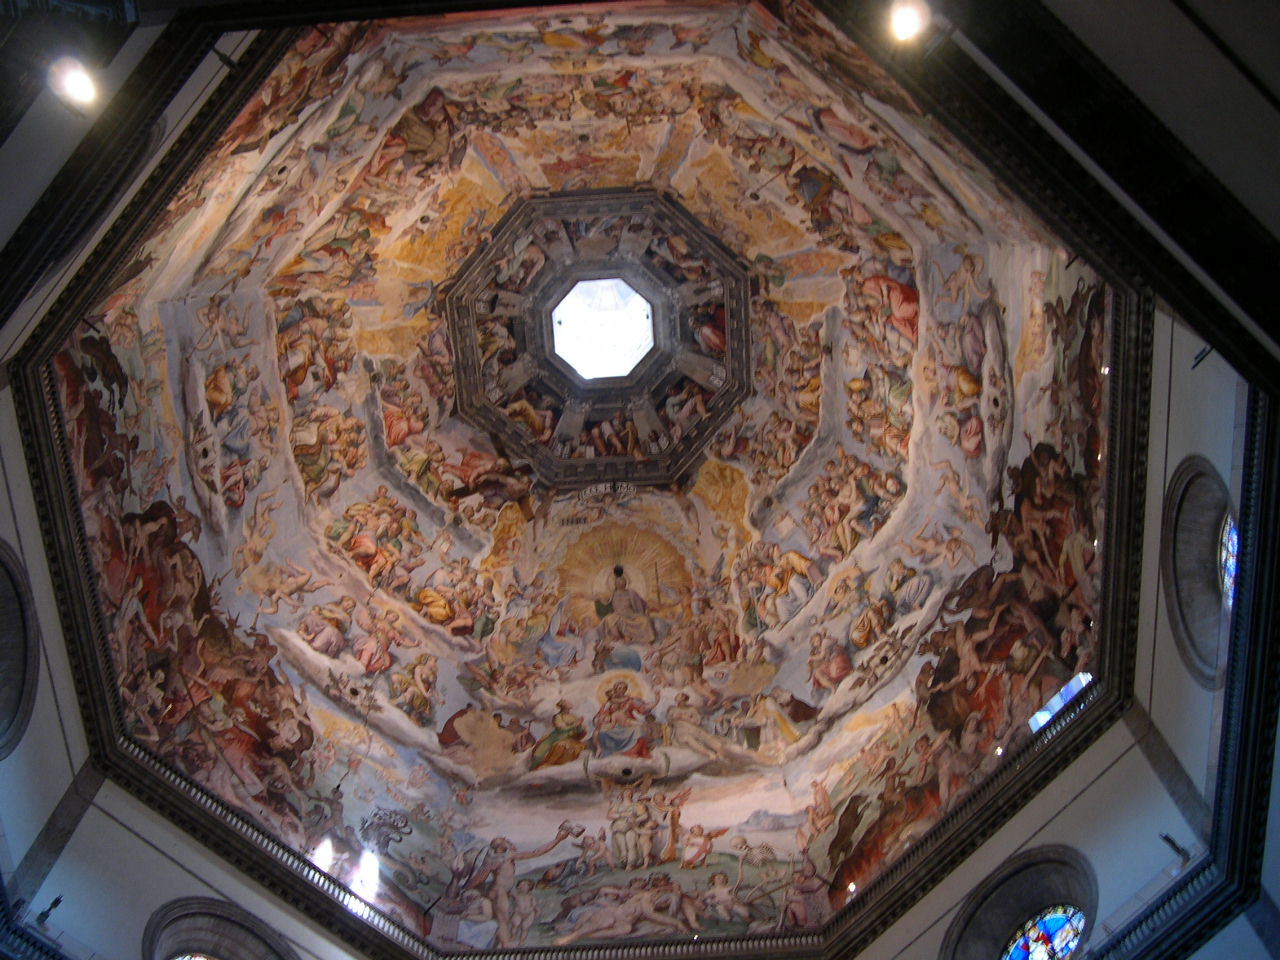 http://upload.wikimedia.org/wikipedia/commons/2/2e/Florence_Dome.JPG